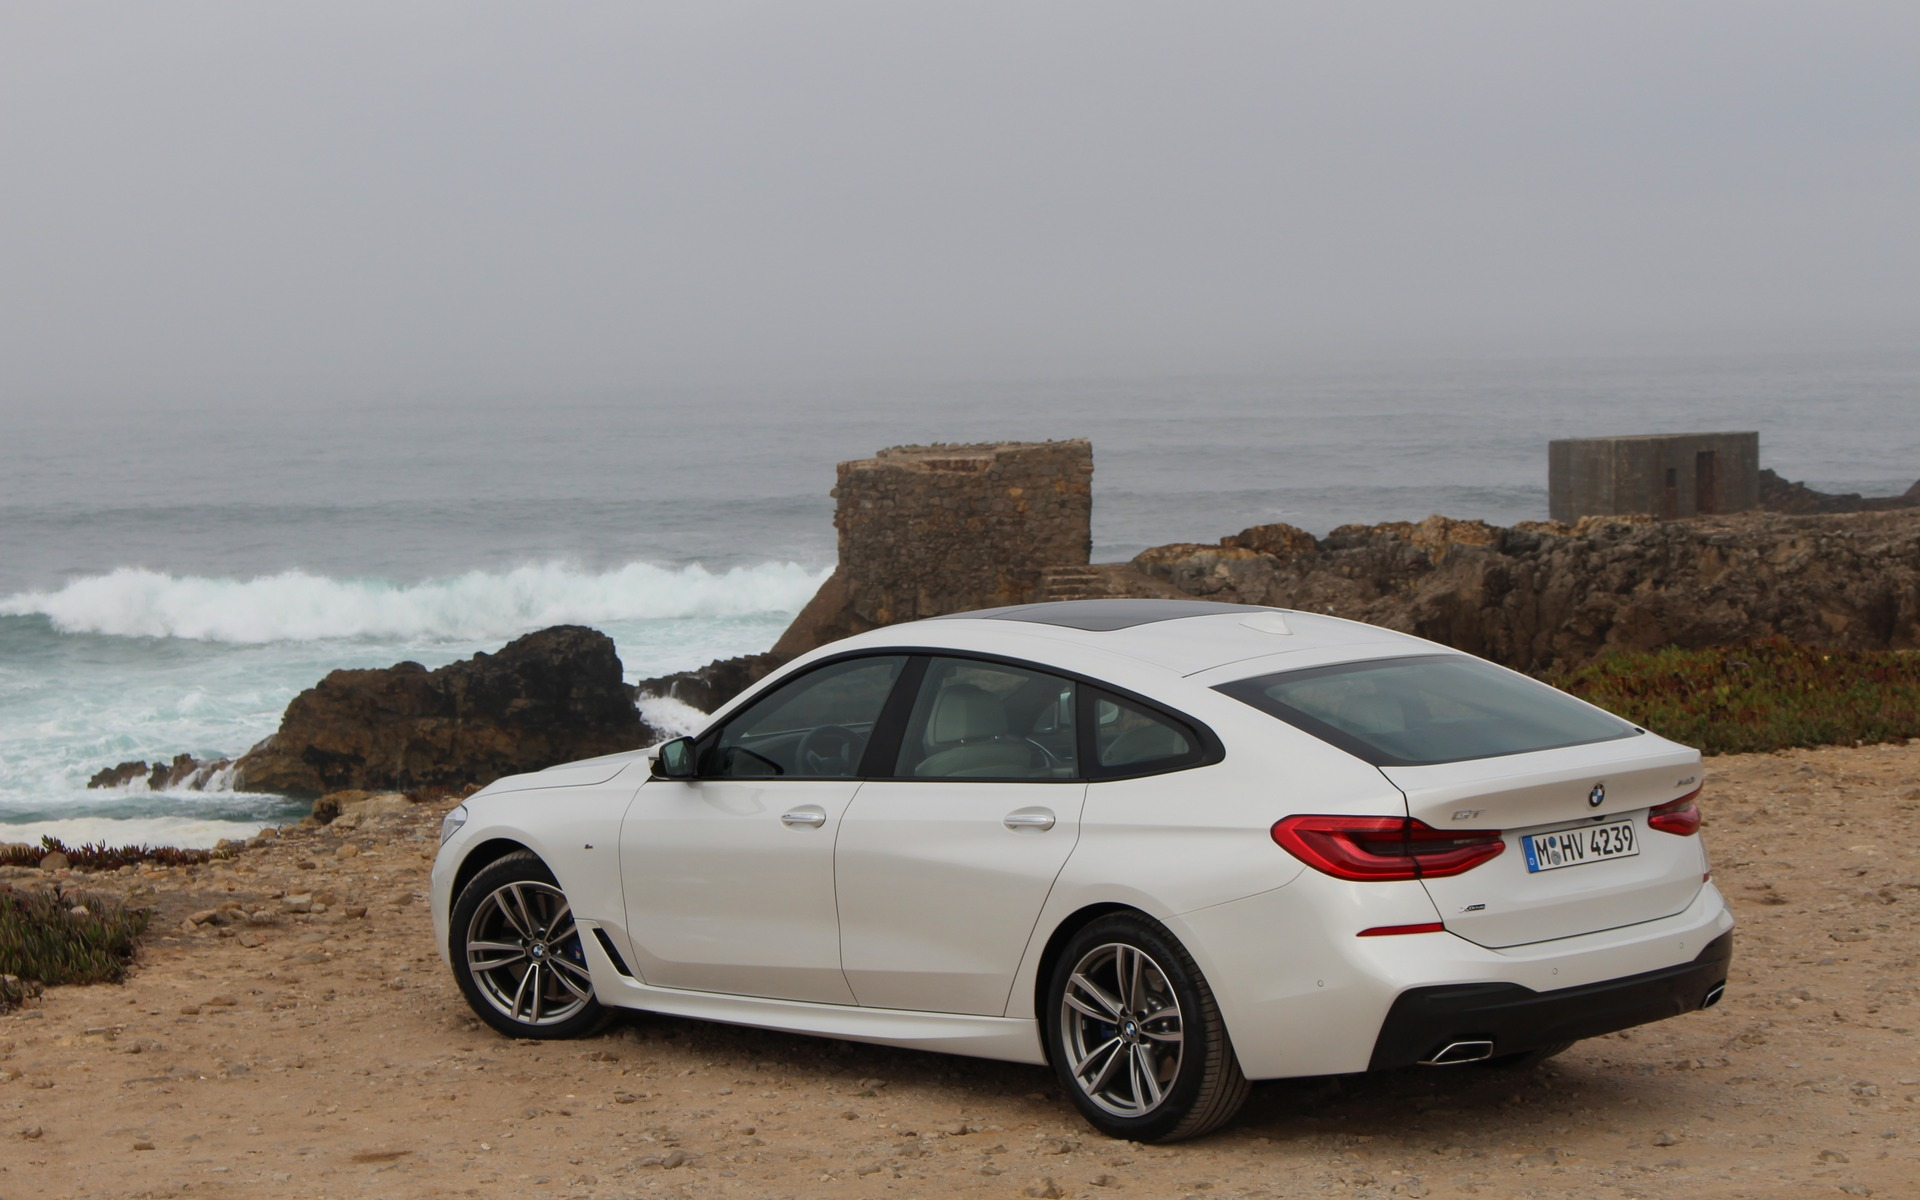 Bmw 640i 2017 >> 2018 BMW 640i xDrive Gran Turismo: The New Face of the 6 Series - 2/31